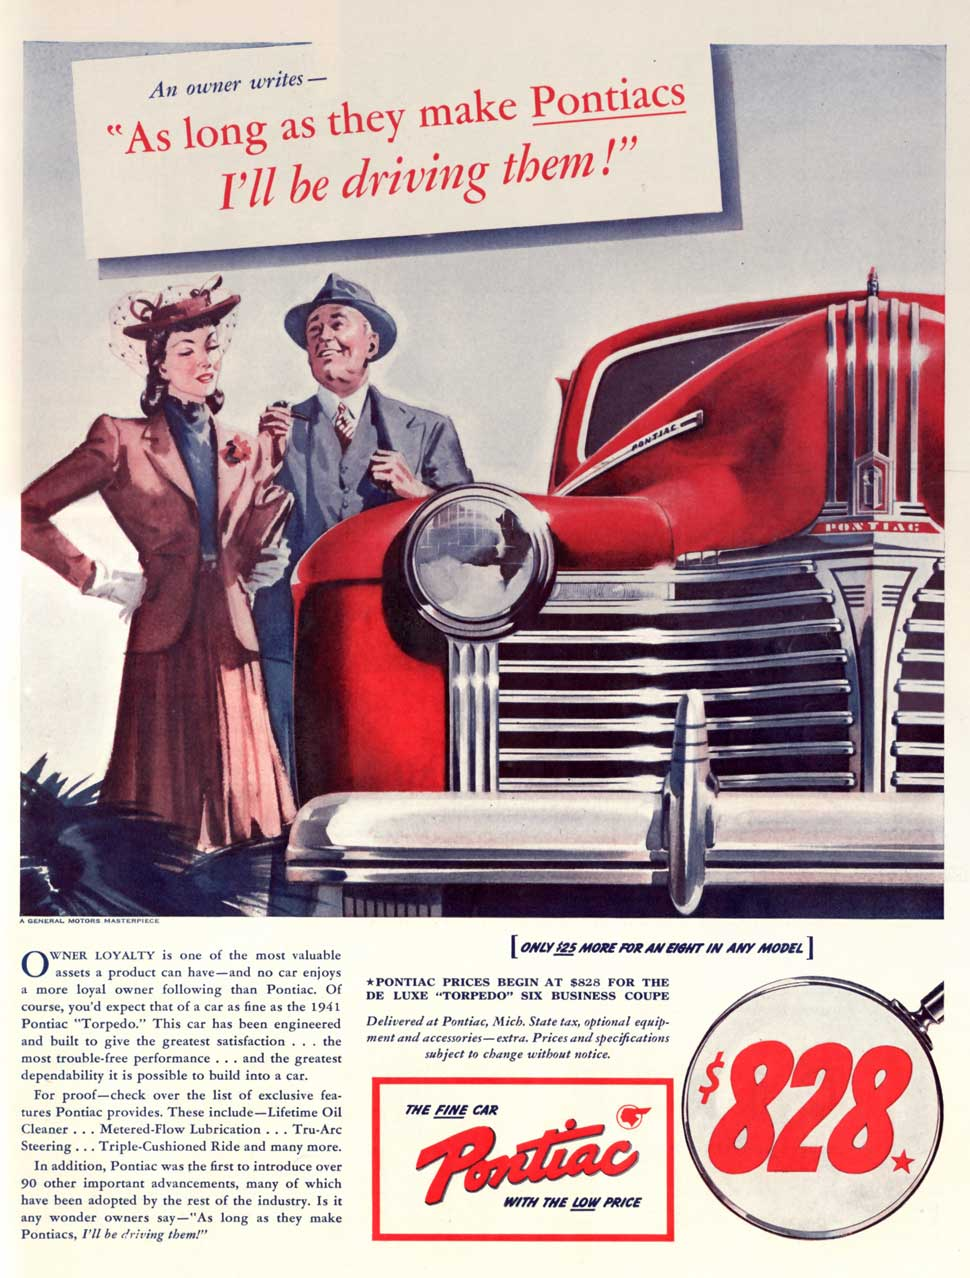 1941 As long as they make Pontiacs